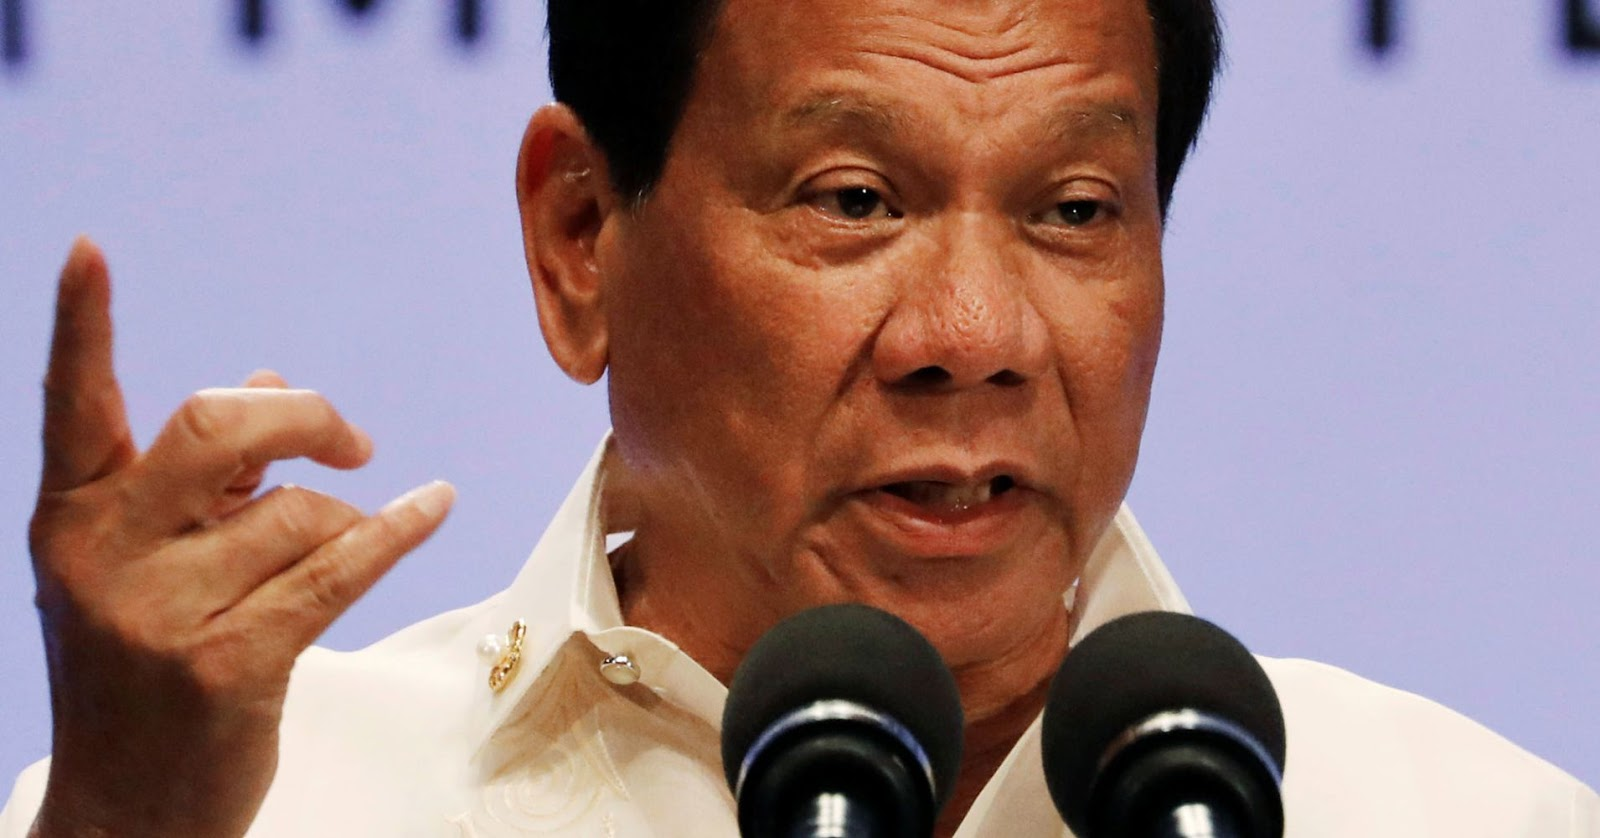 The Philippines Per Capita GDP Has Reached An All-Time High Under Duterte